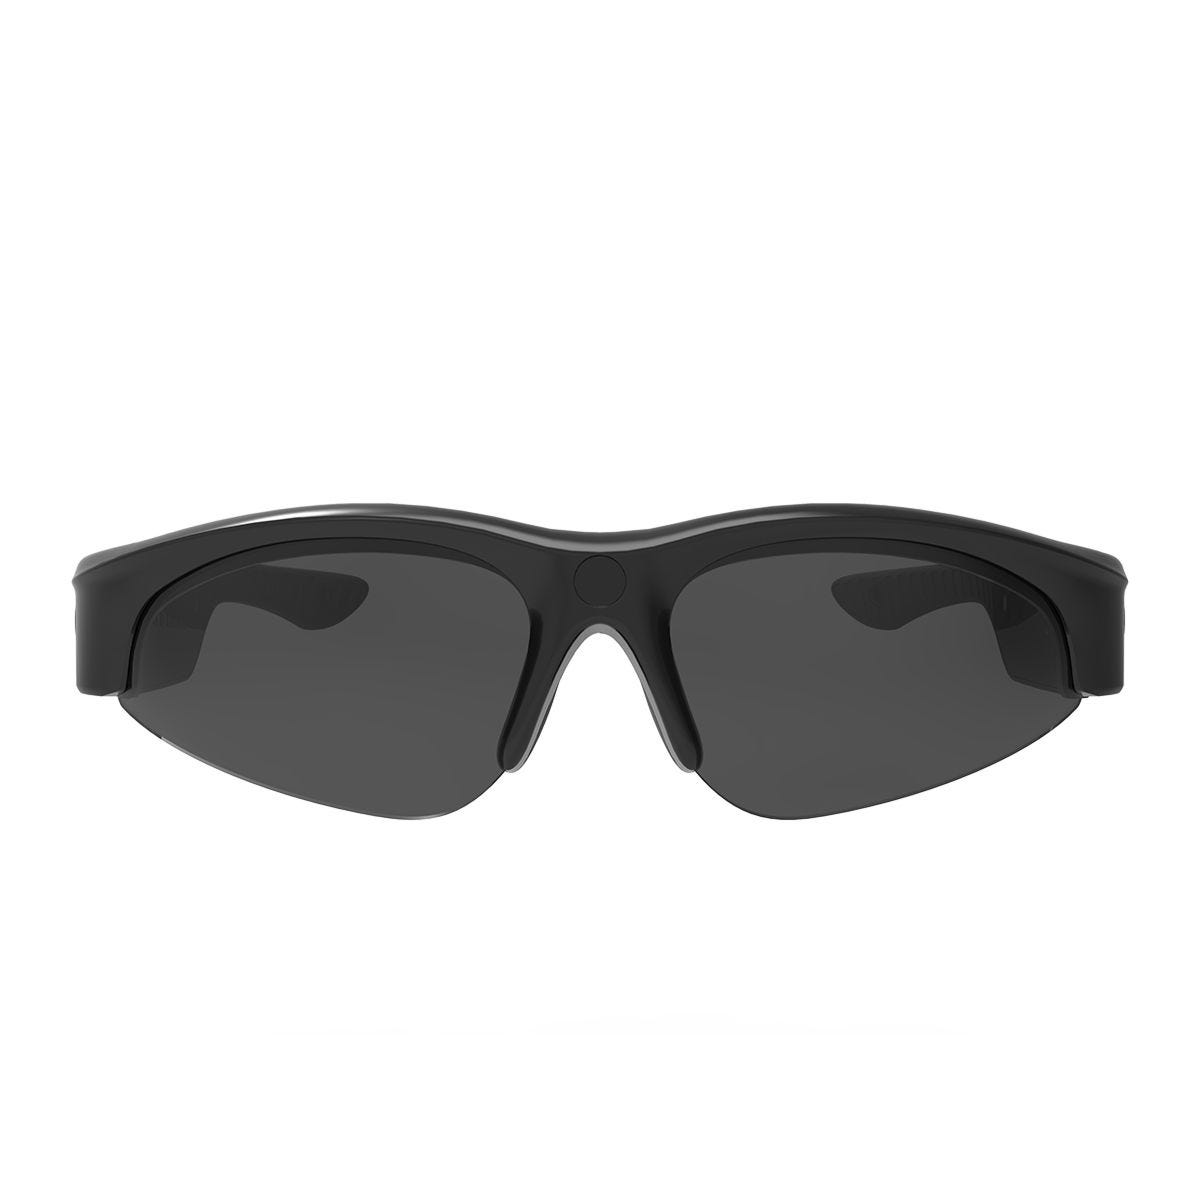 SunnyCam Activ 1080HD Video Recording Camera Eyewear